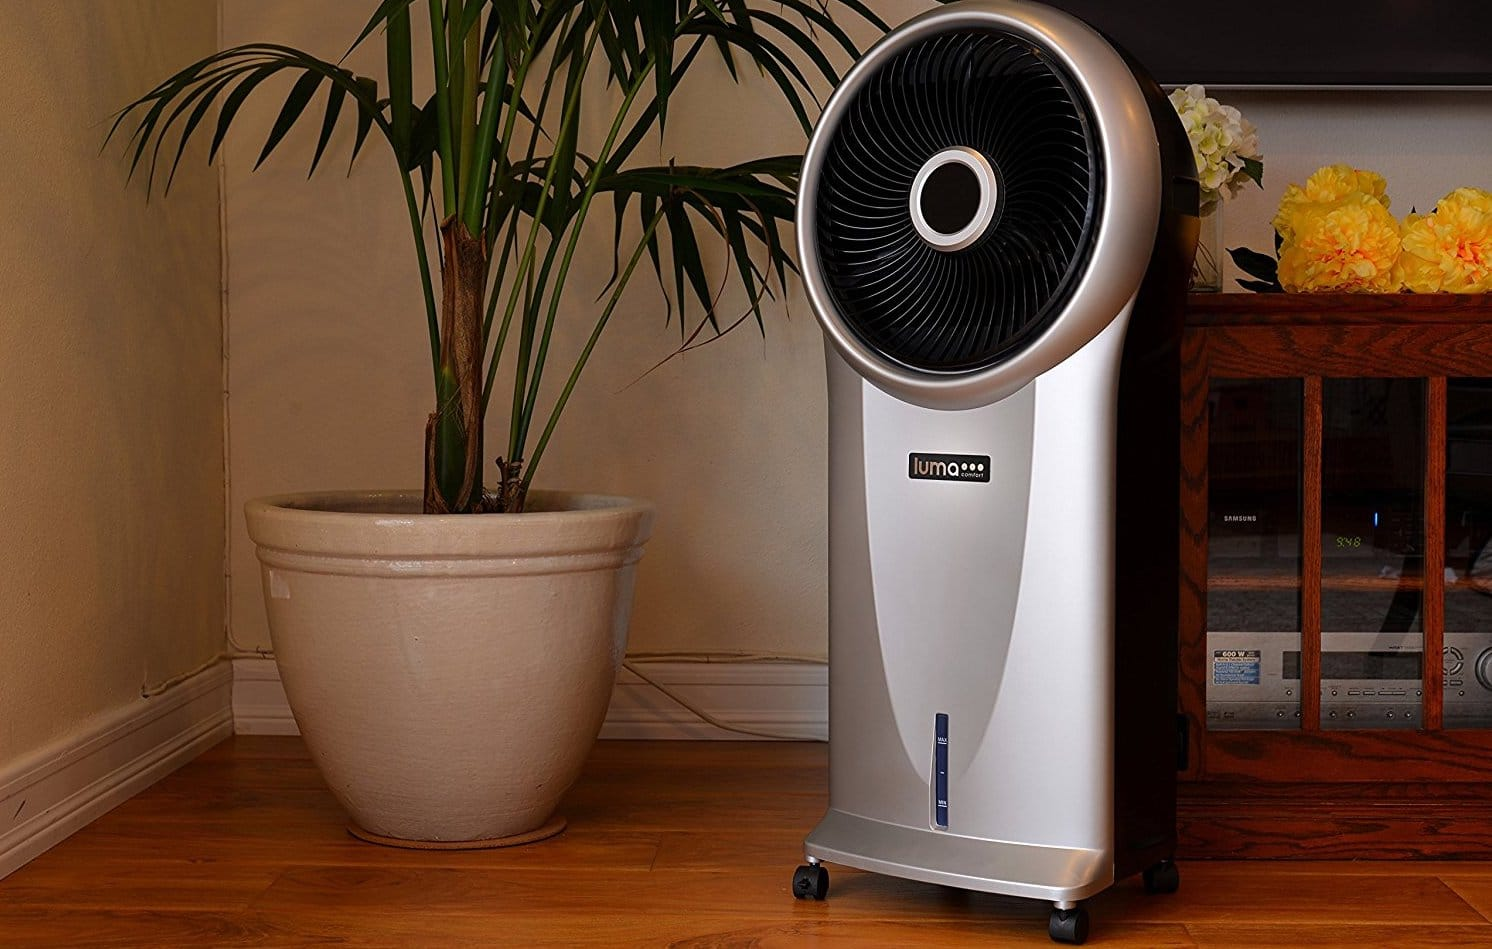 Best Portable Air Conditioner Without Hose - 2021 Reviews